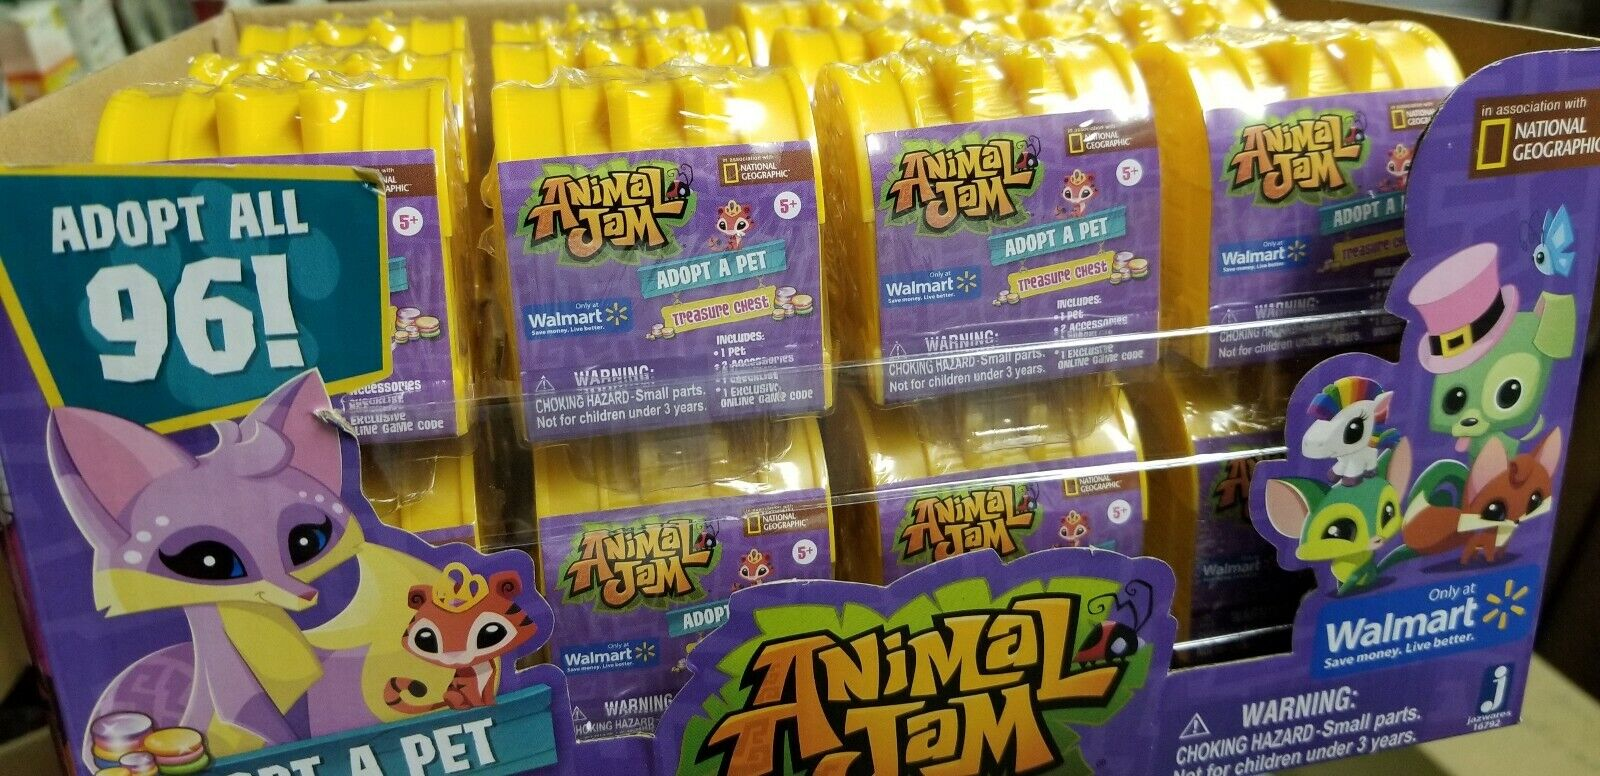 Animal Jam Adopt A Pet Treasure Chests Mystery Case of 24 All Yellow